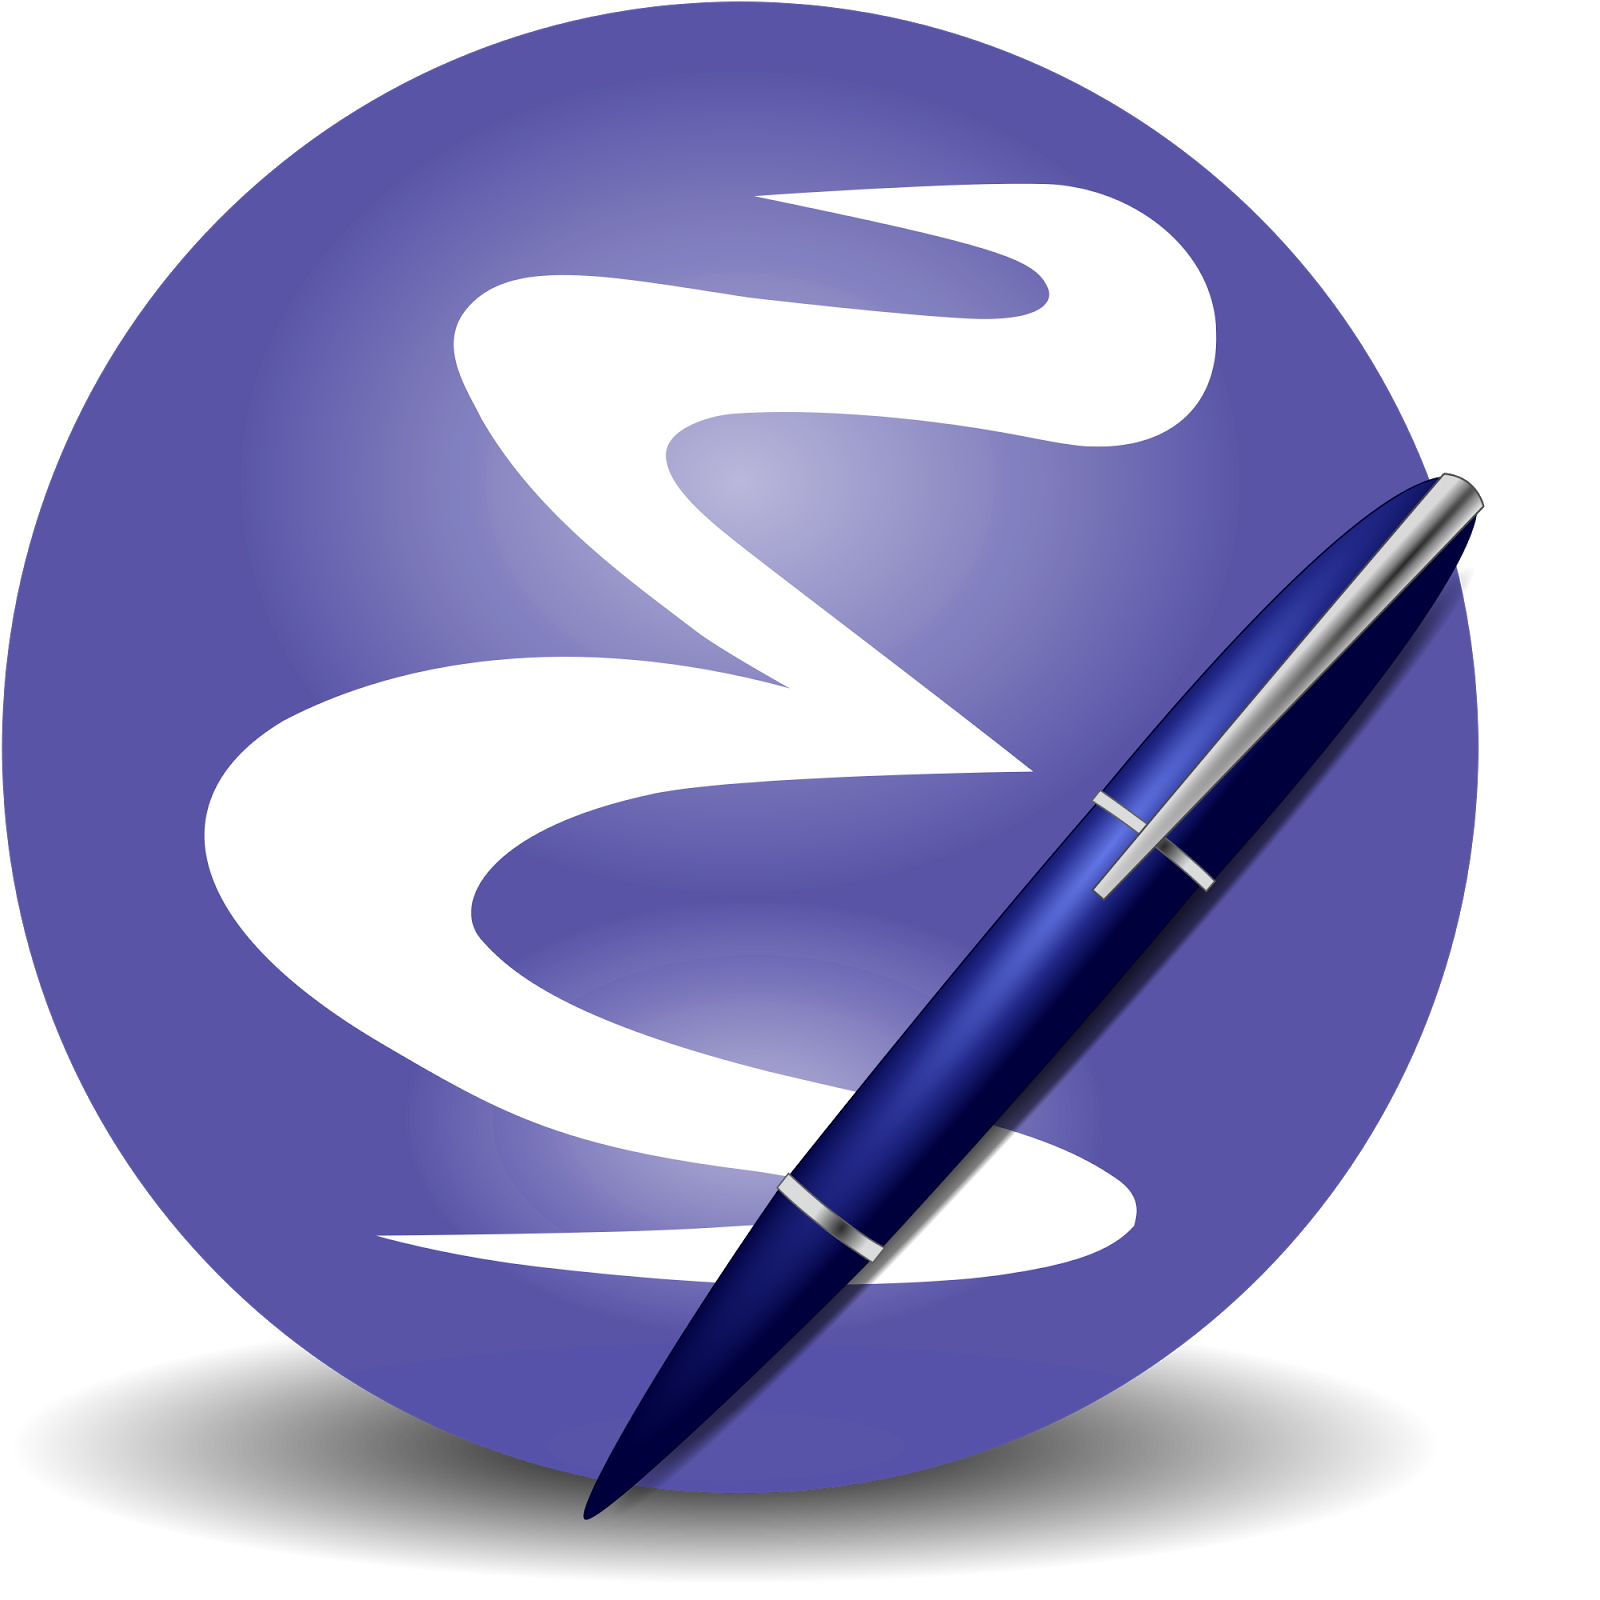 tts-mode for emacs update - support Mac OS X's tts engine